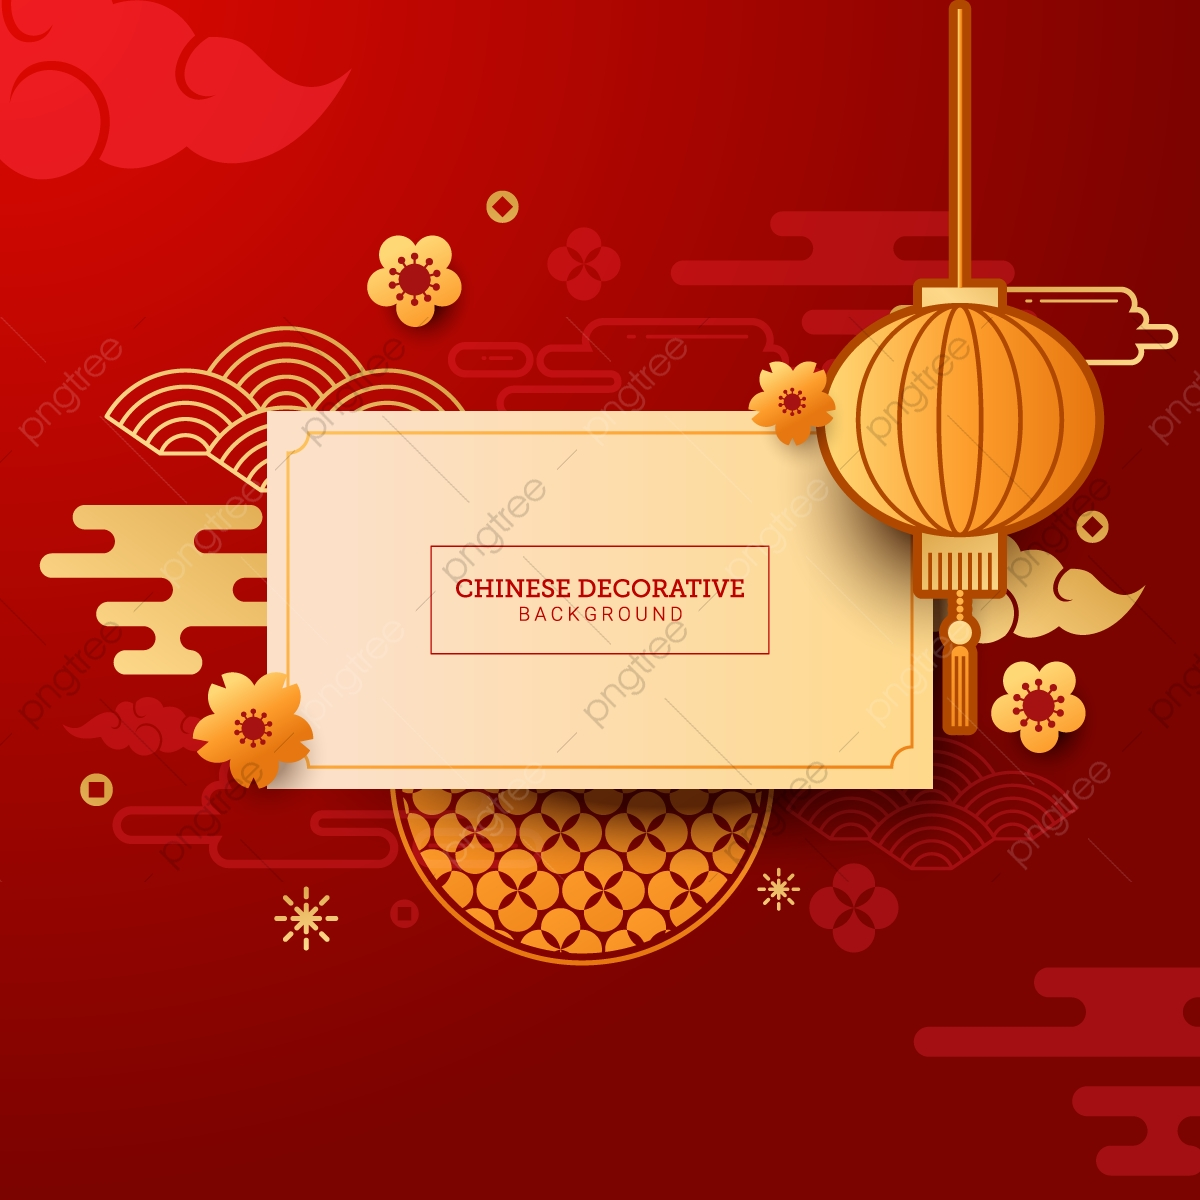 new year greeting cards png images vector and psd files free download on pngtree https pngtree com freepng elegant chinese decorative background for new year greeting card 3724285 html